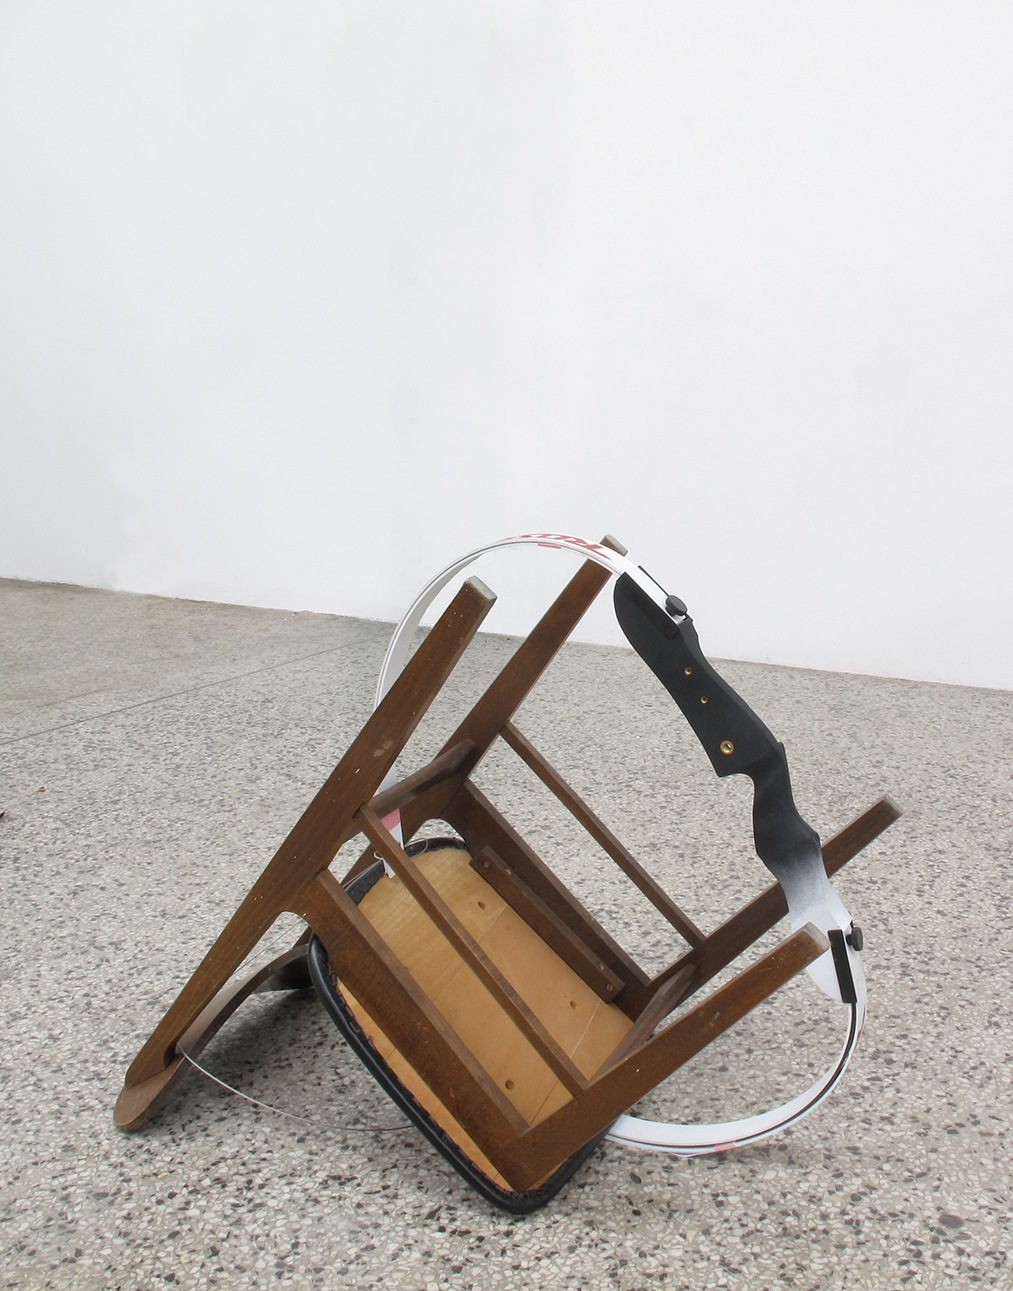 Untitled, chair and modified compound bow - 2012 - Jackson Slattery